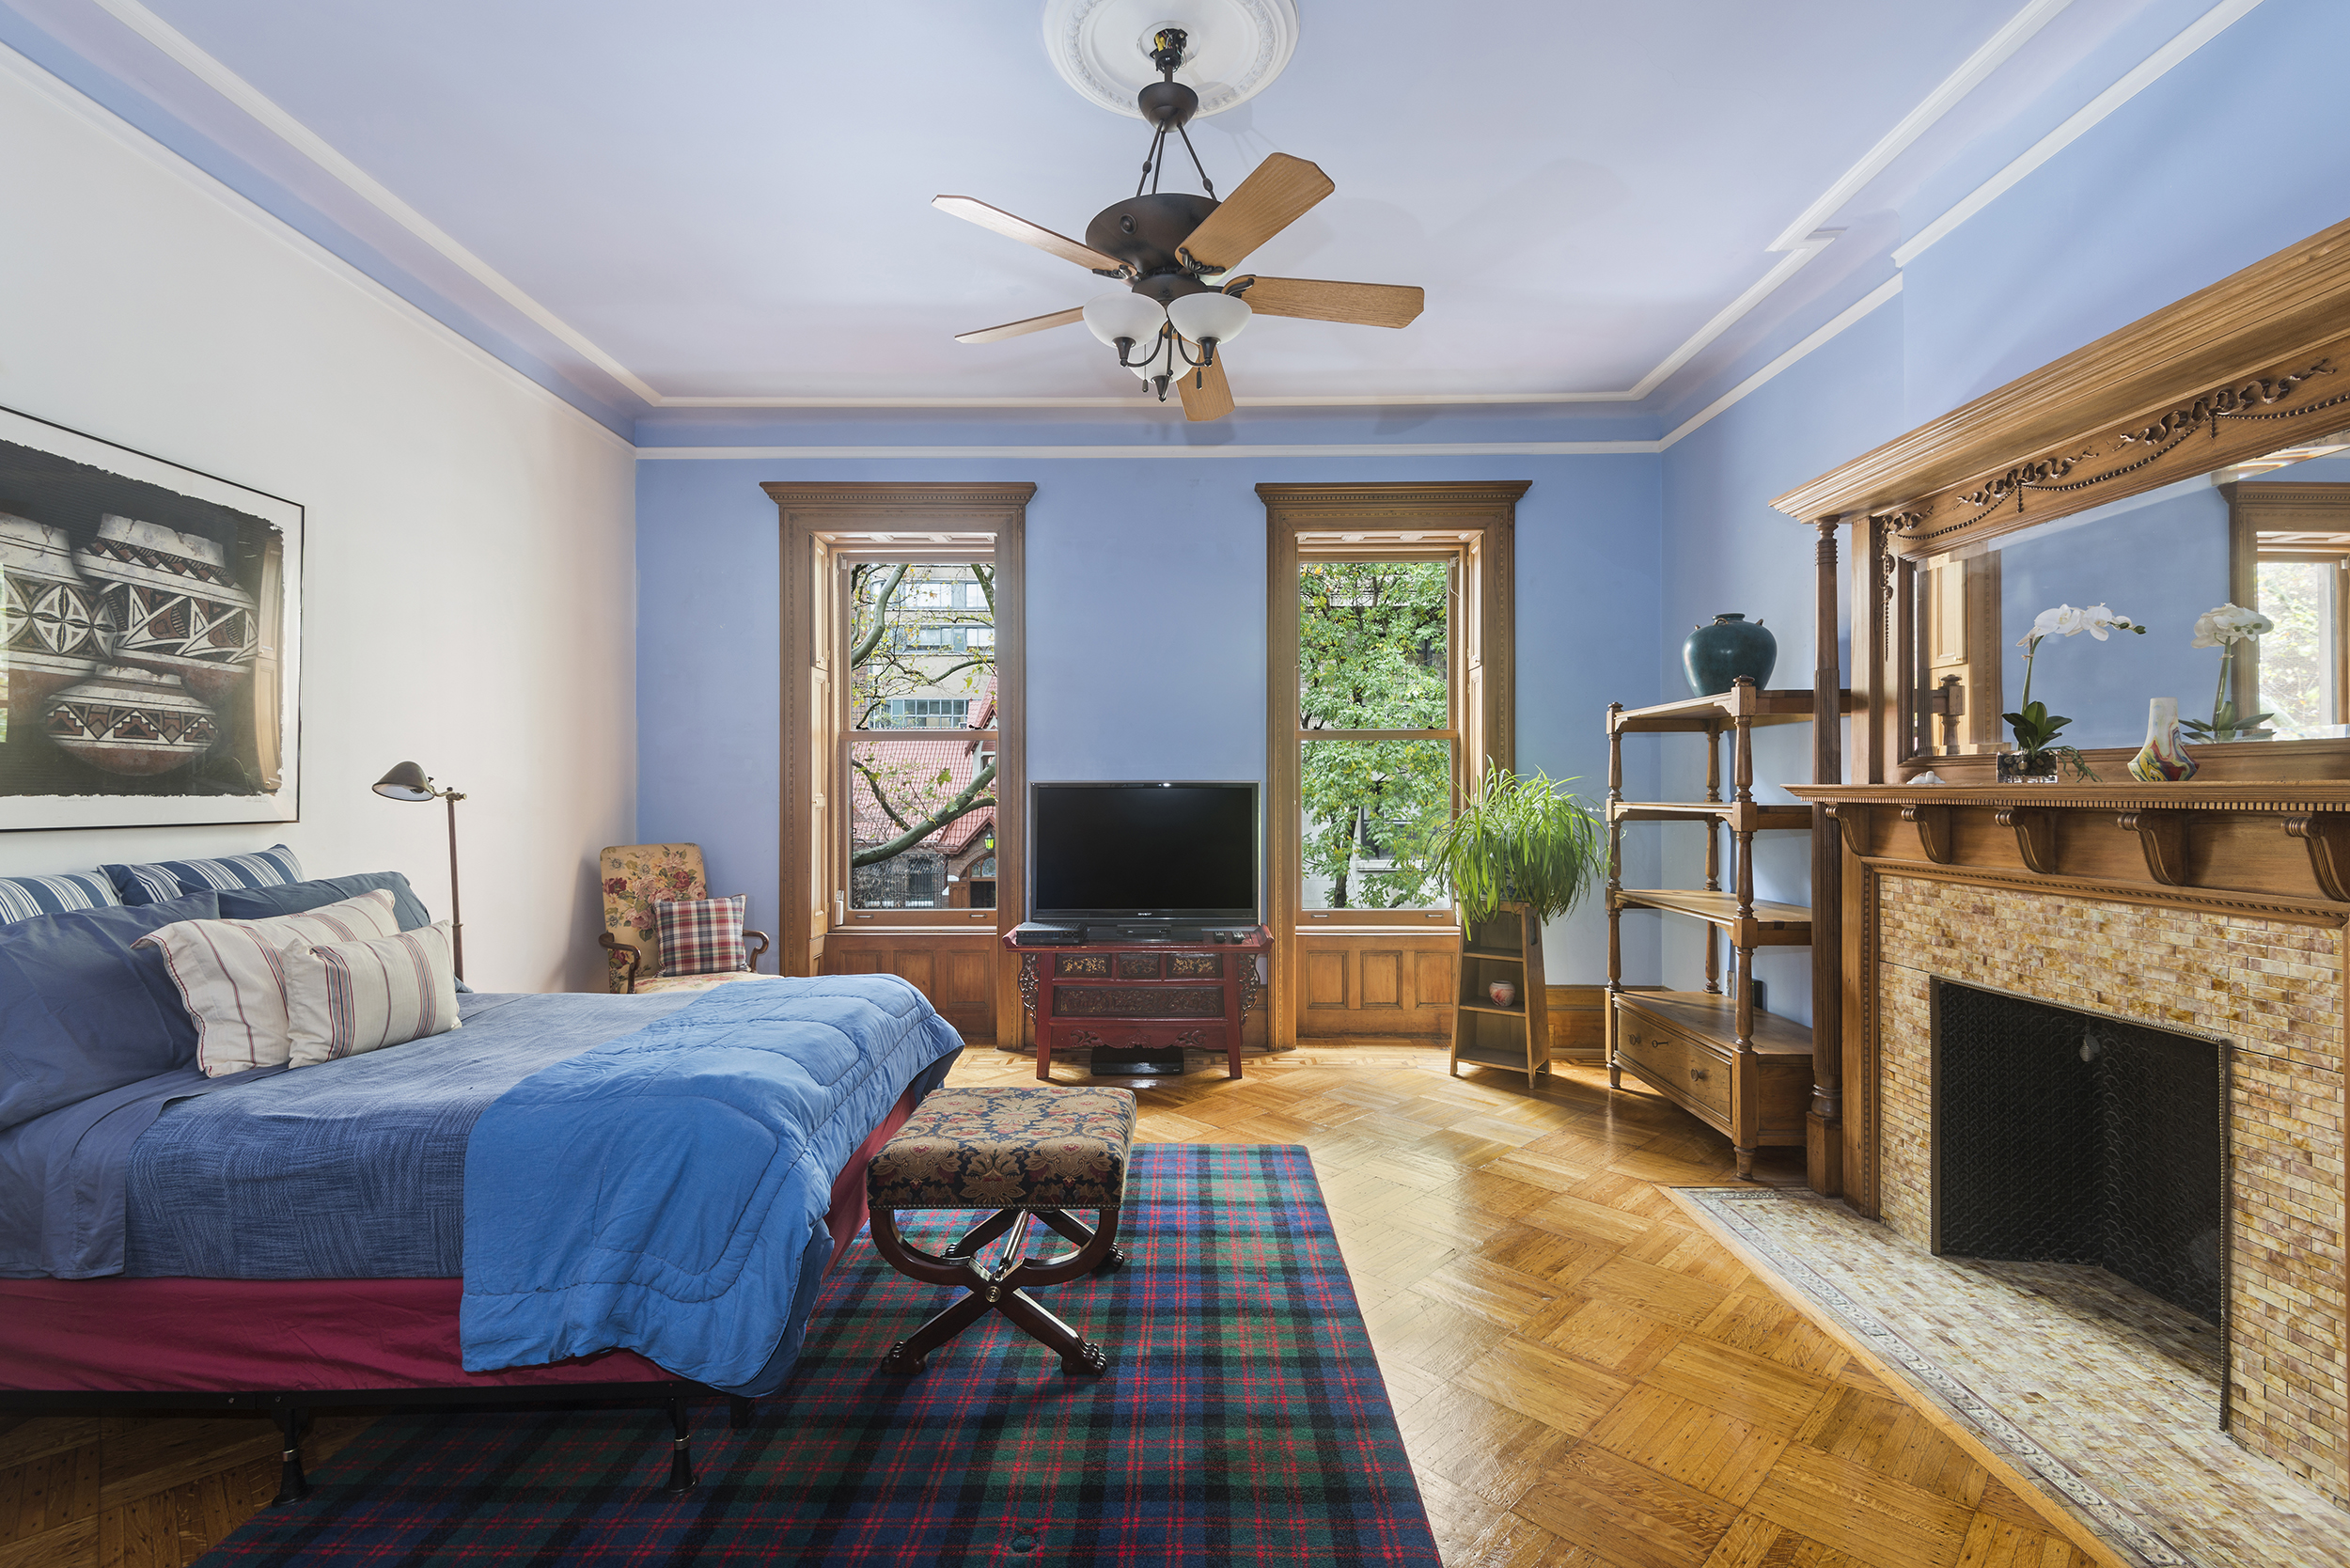 131 West 69th Street: Luxury Upper West Side townhouse for sale